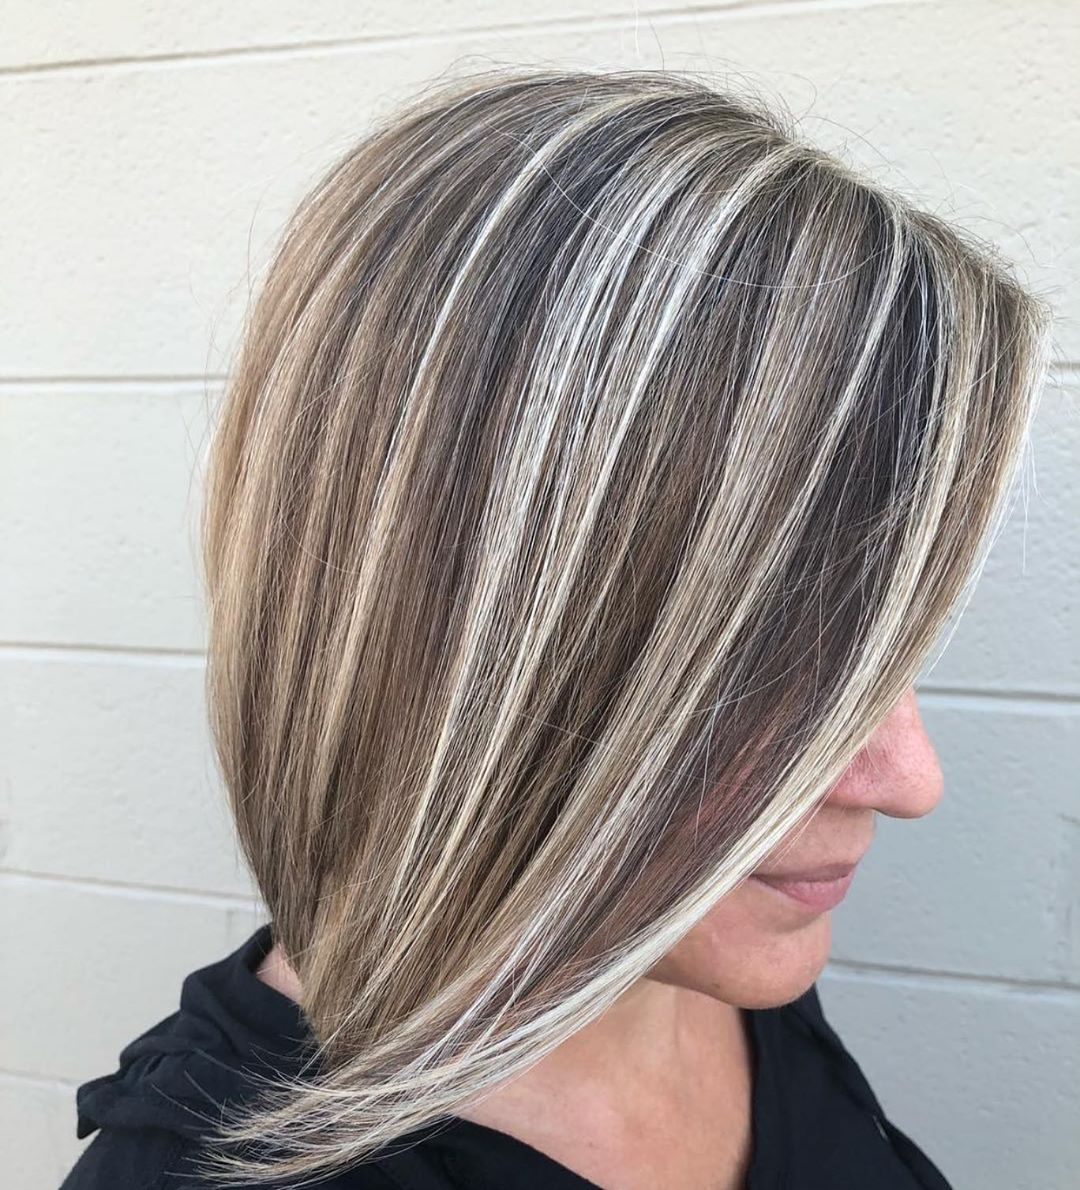 Ashy Highlights to Cover Gray